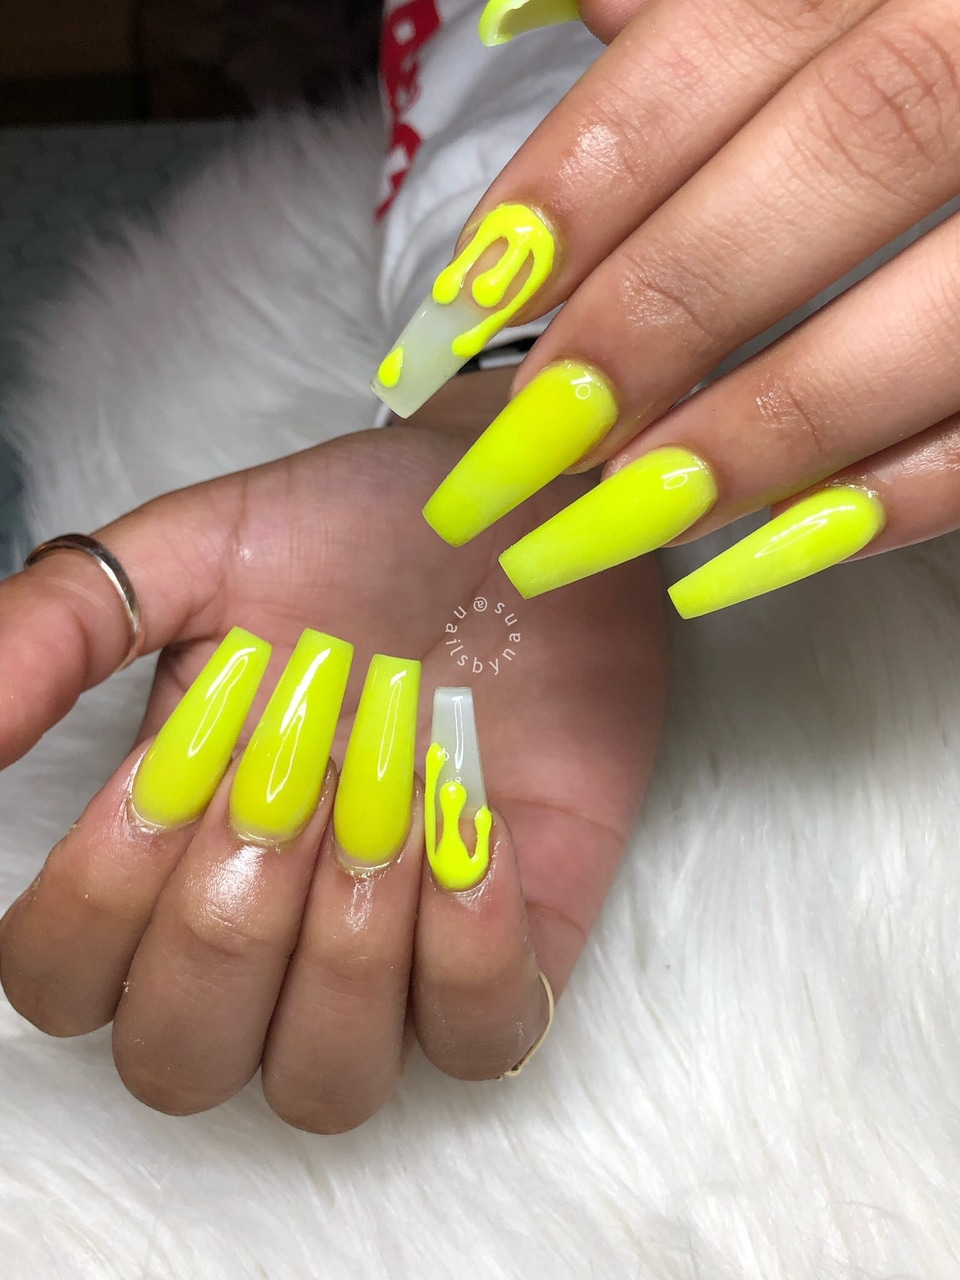 Nails Coffin Shape Yellow Nails And Almond Nails Image 6892558 On Favim Com